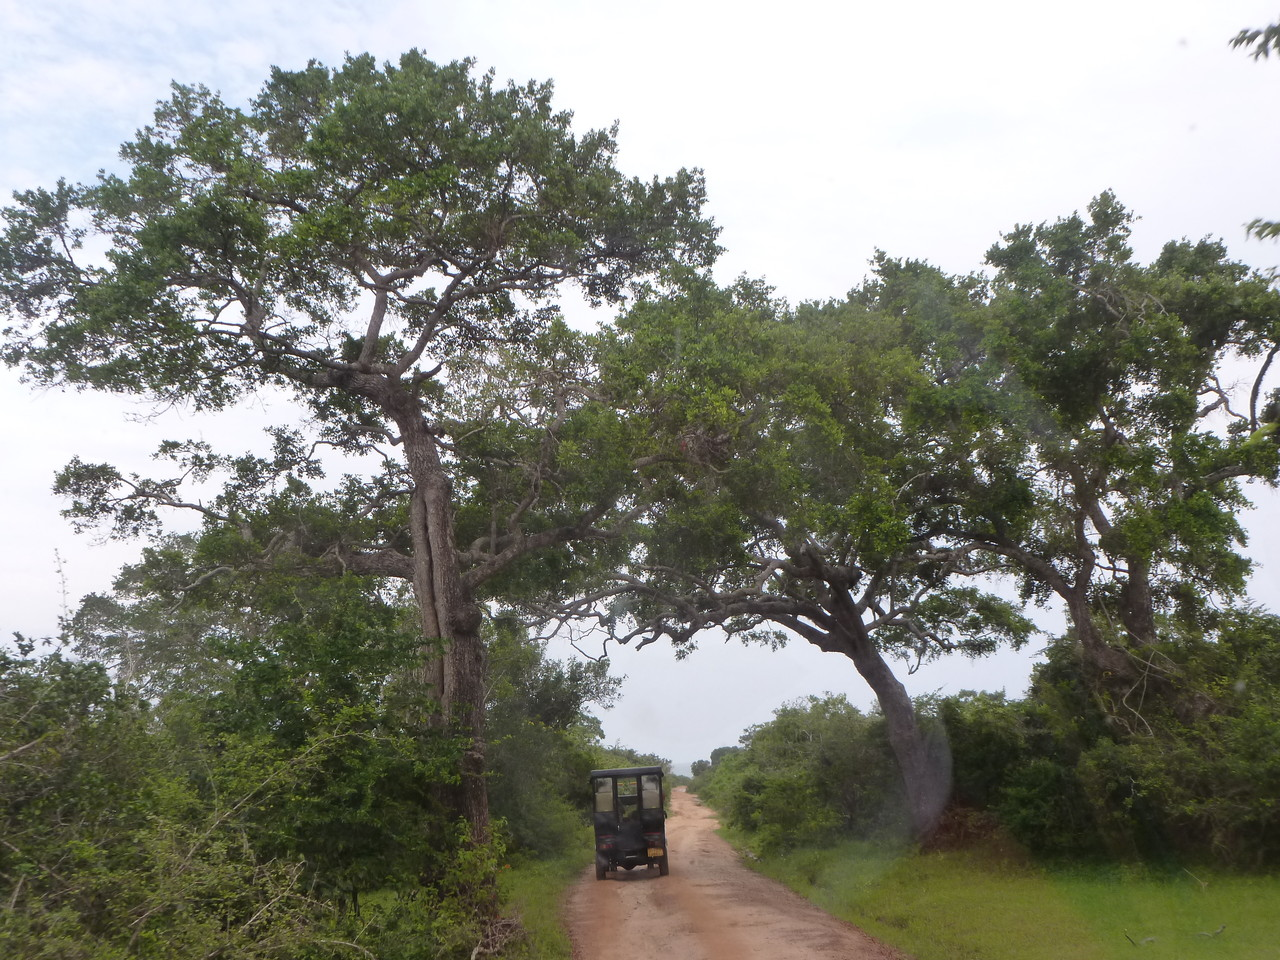 Jeep-Safari im Yala Nationalpark